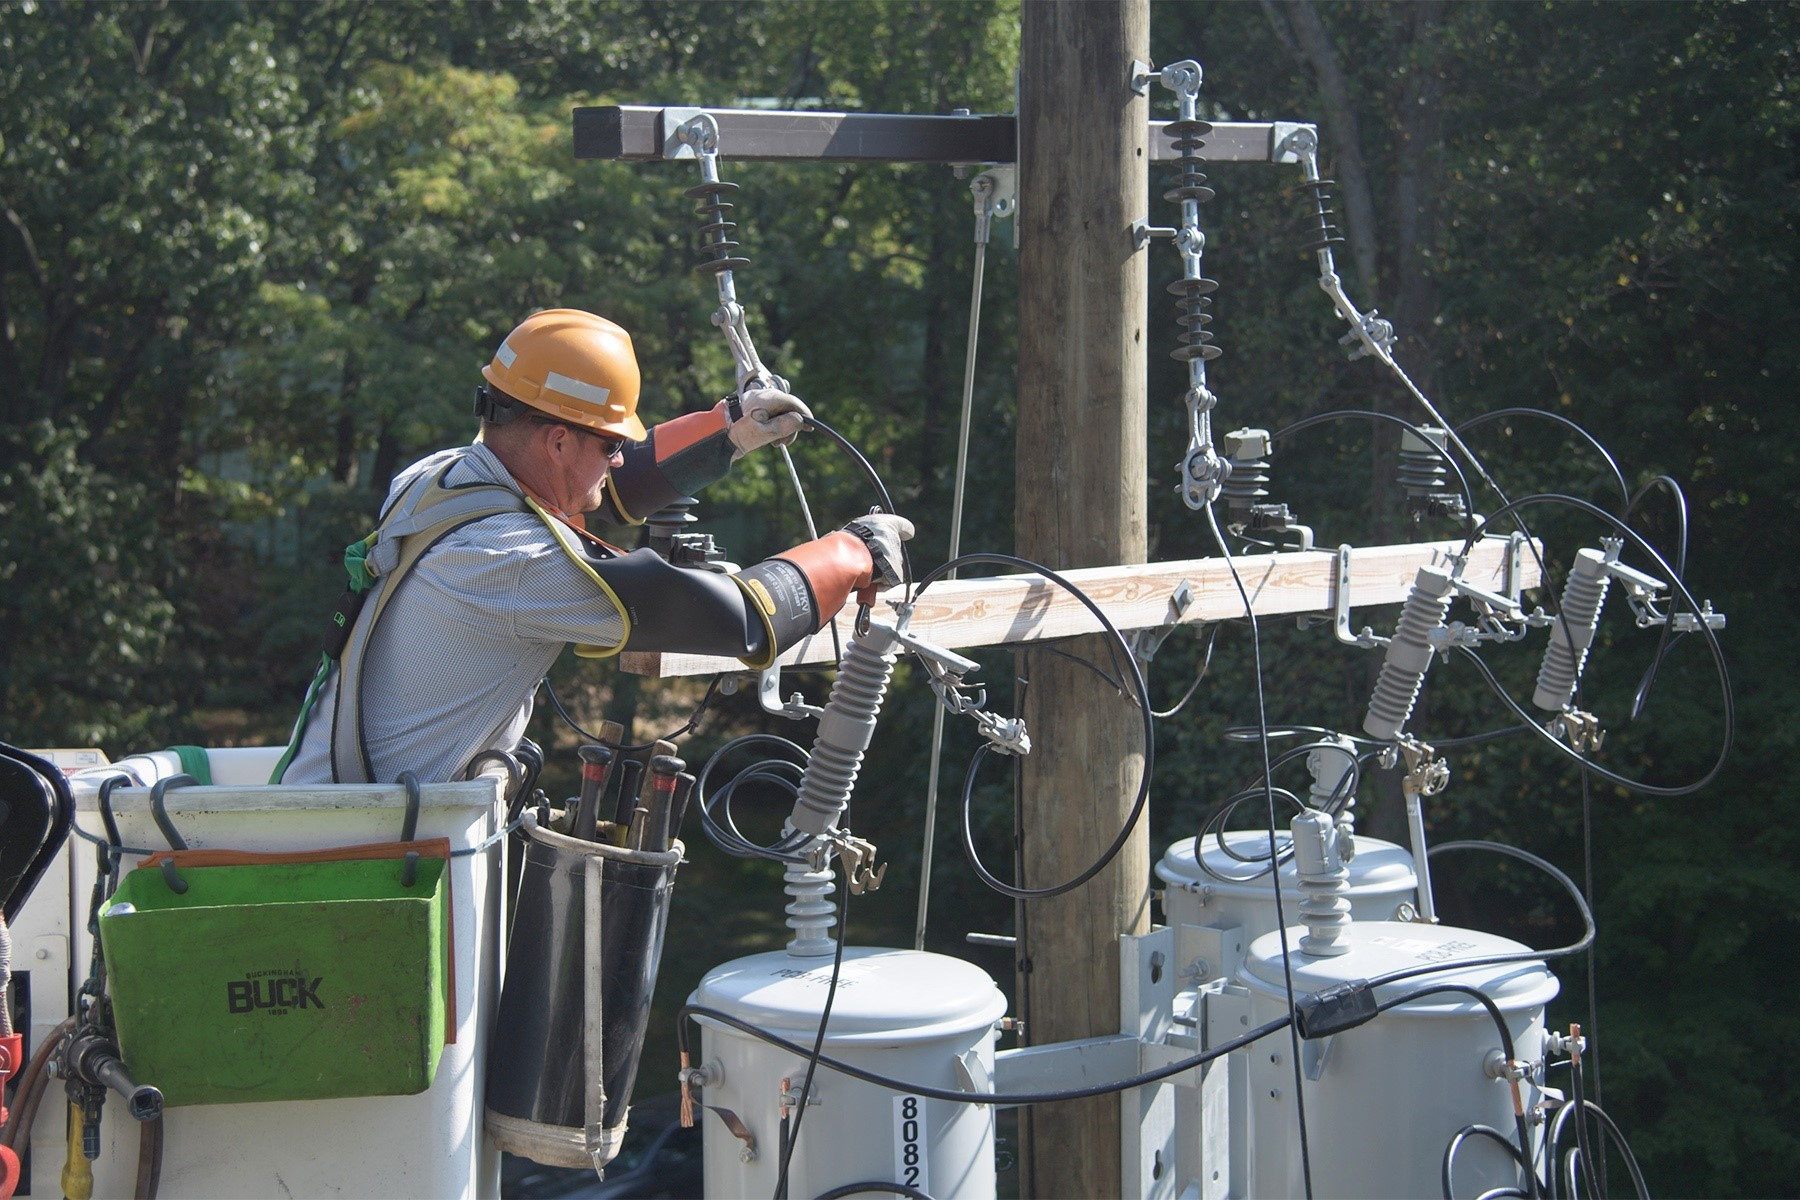 Lineman working on electric service line.